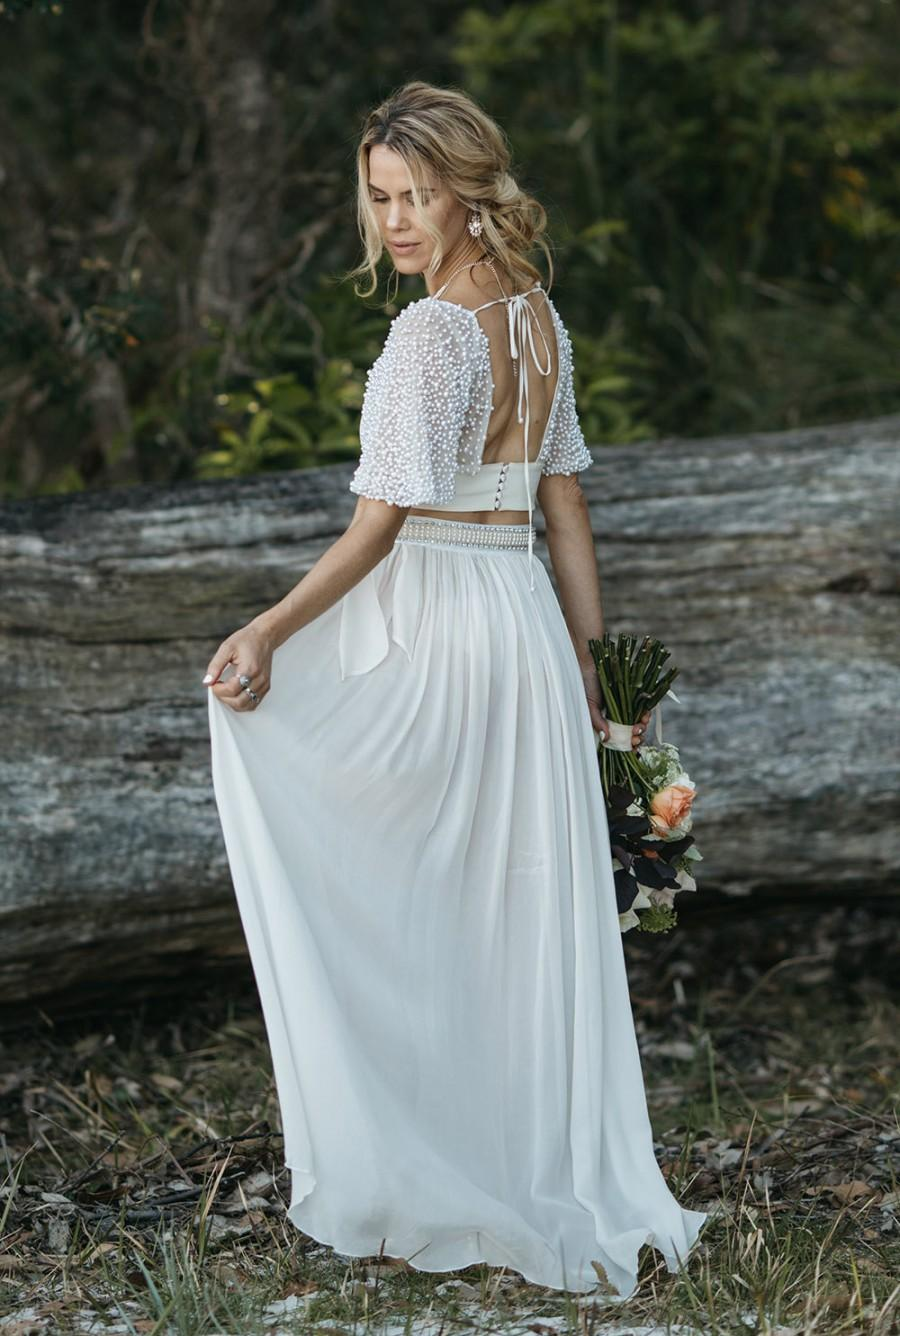 Kleiden - Under Your Spell 2PC Wedding Gown #2826476 - Weddbook